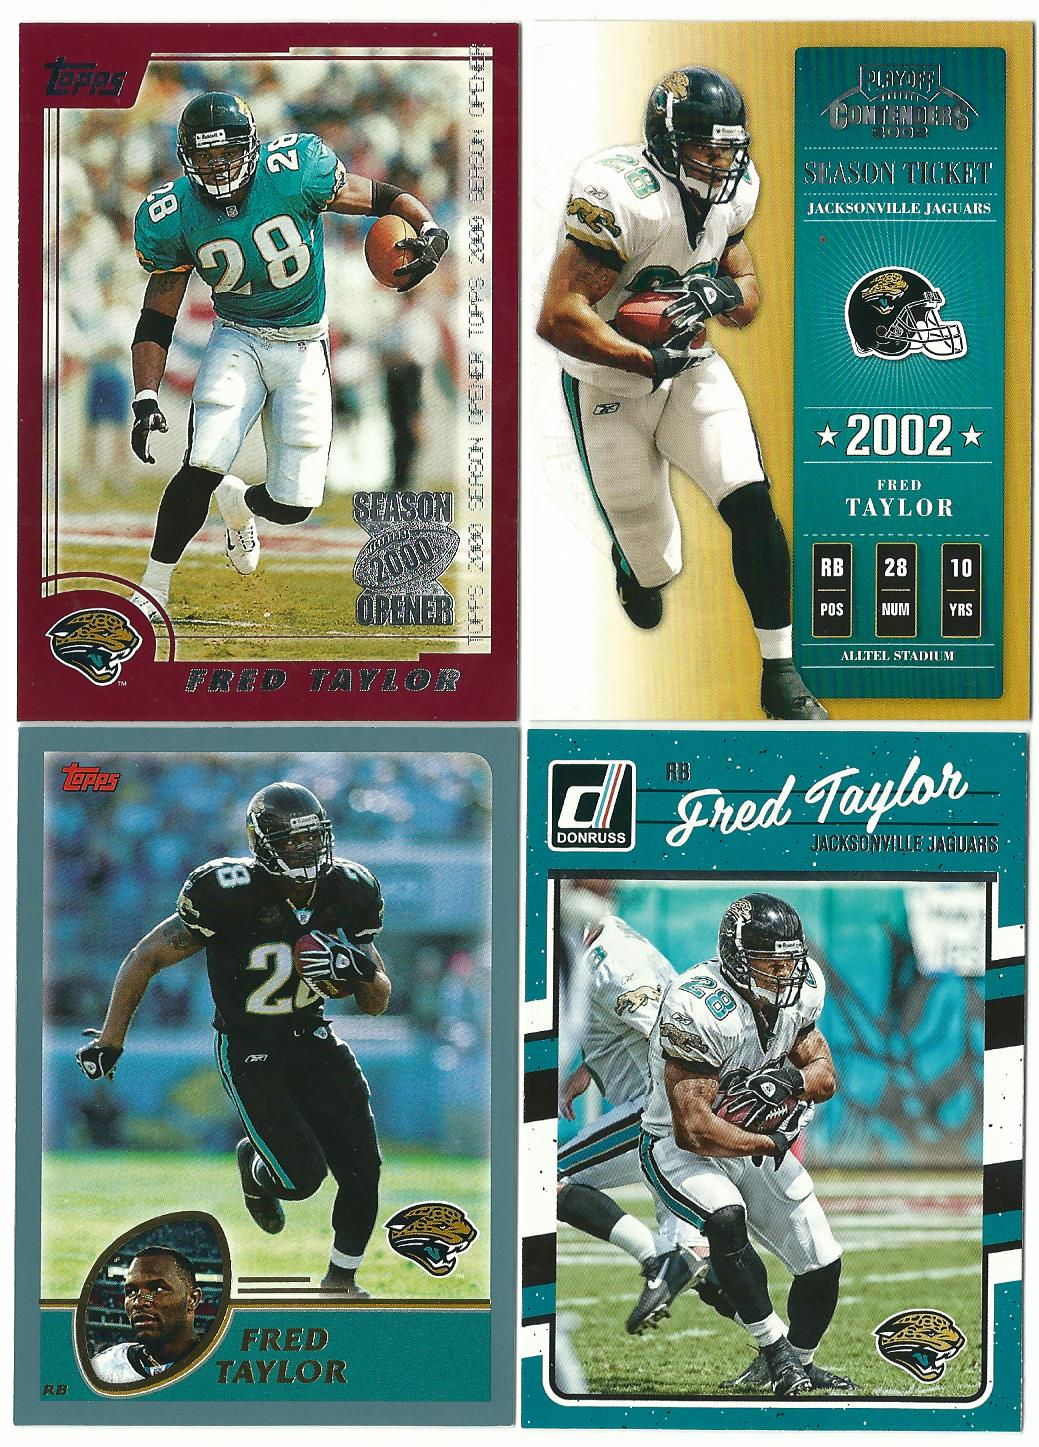 286940b0 Fred Taylor is the only Jaguar in my star player box - and I'm not certain  he should be considered a